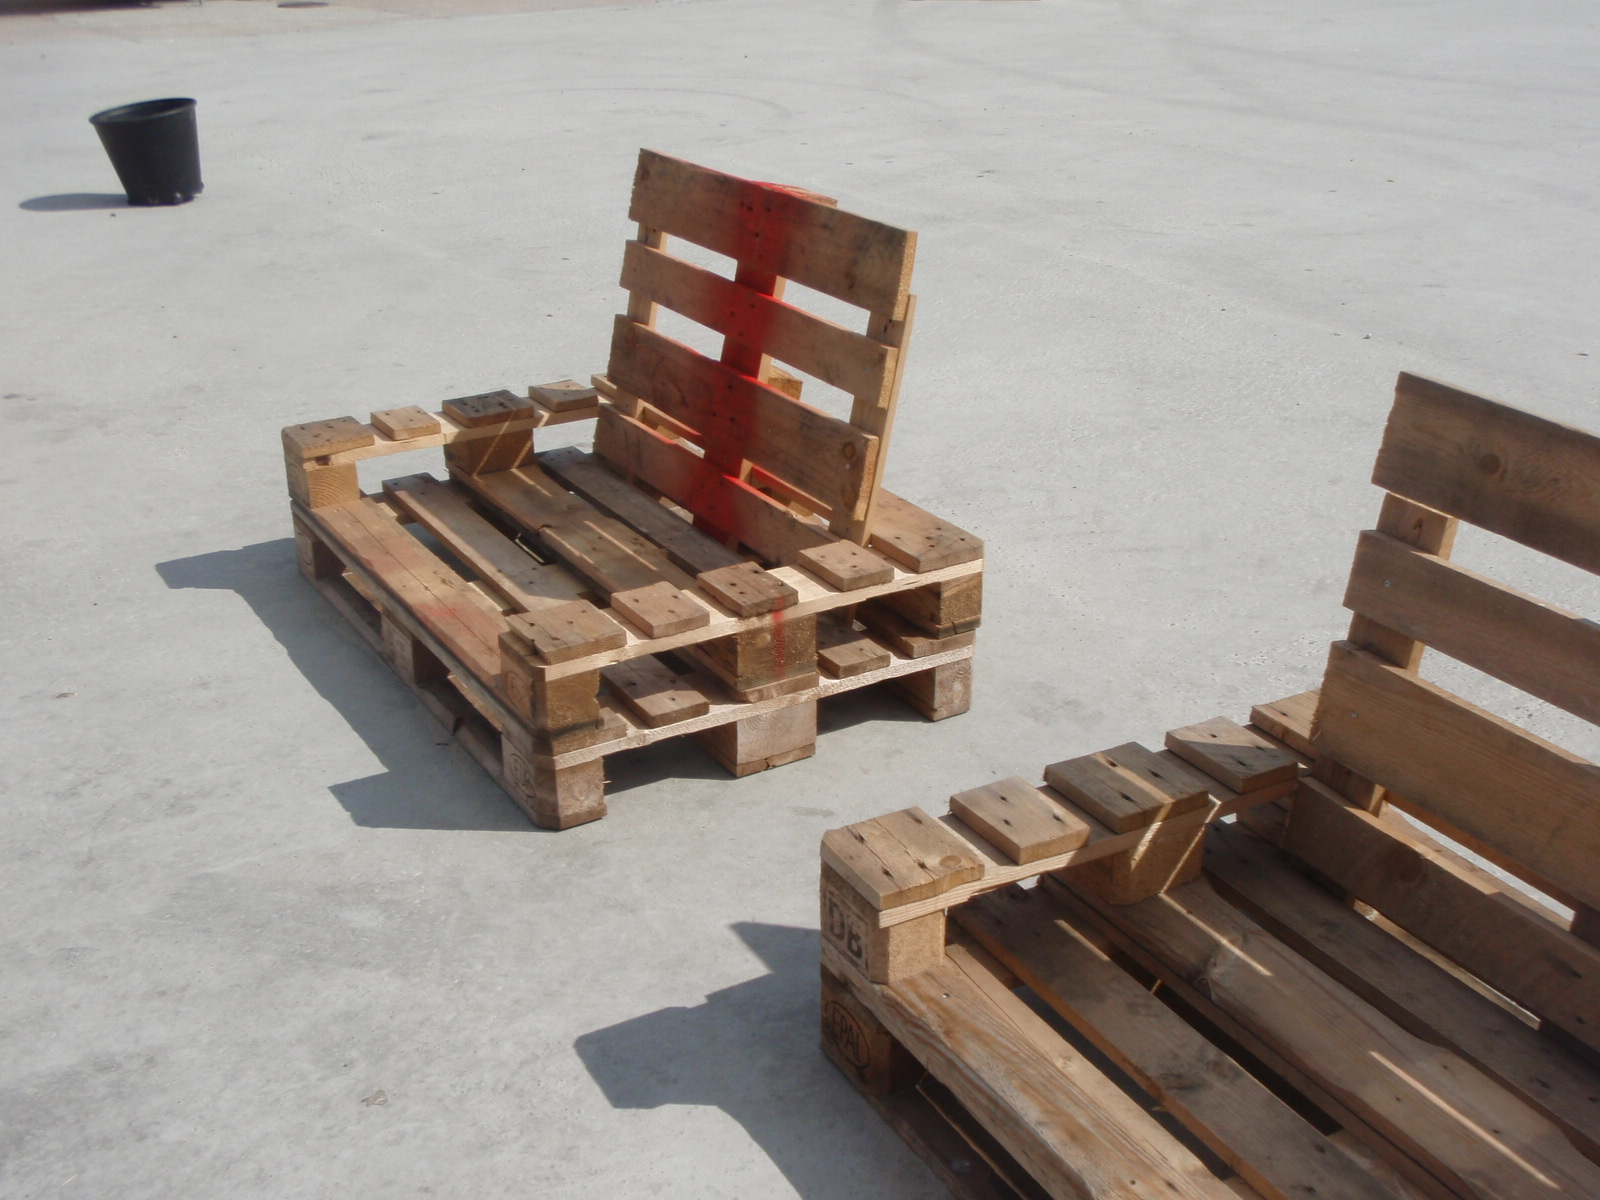 Copenhagen: Pallet Furniture  City Love